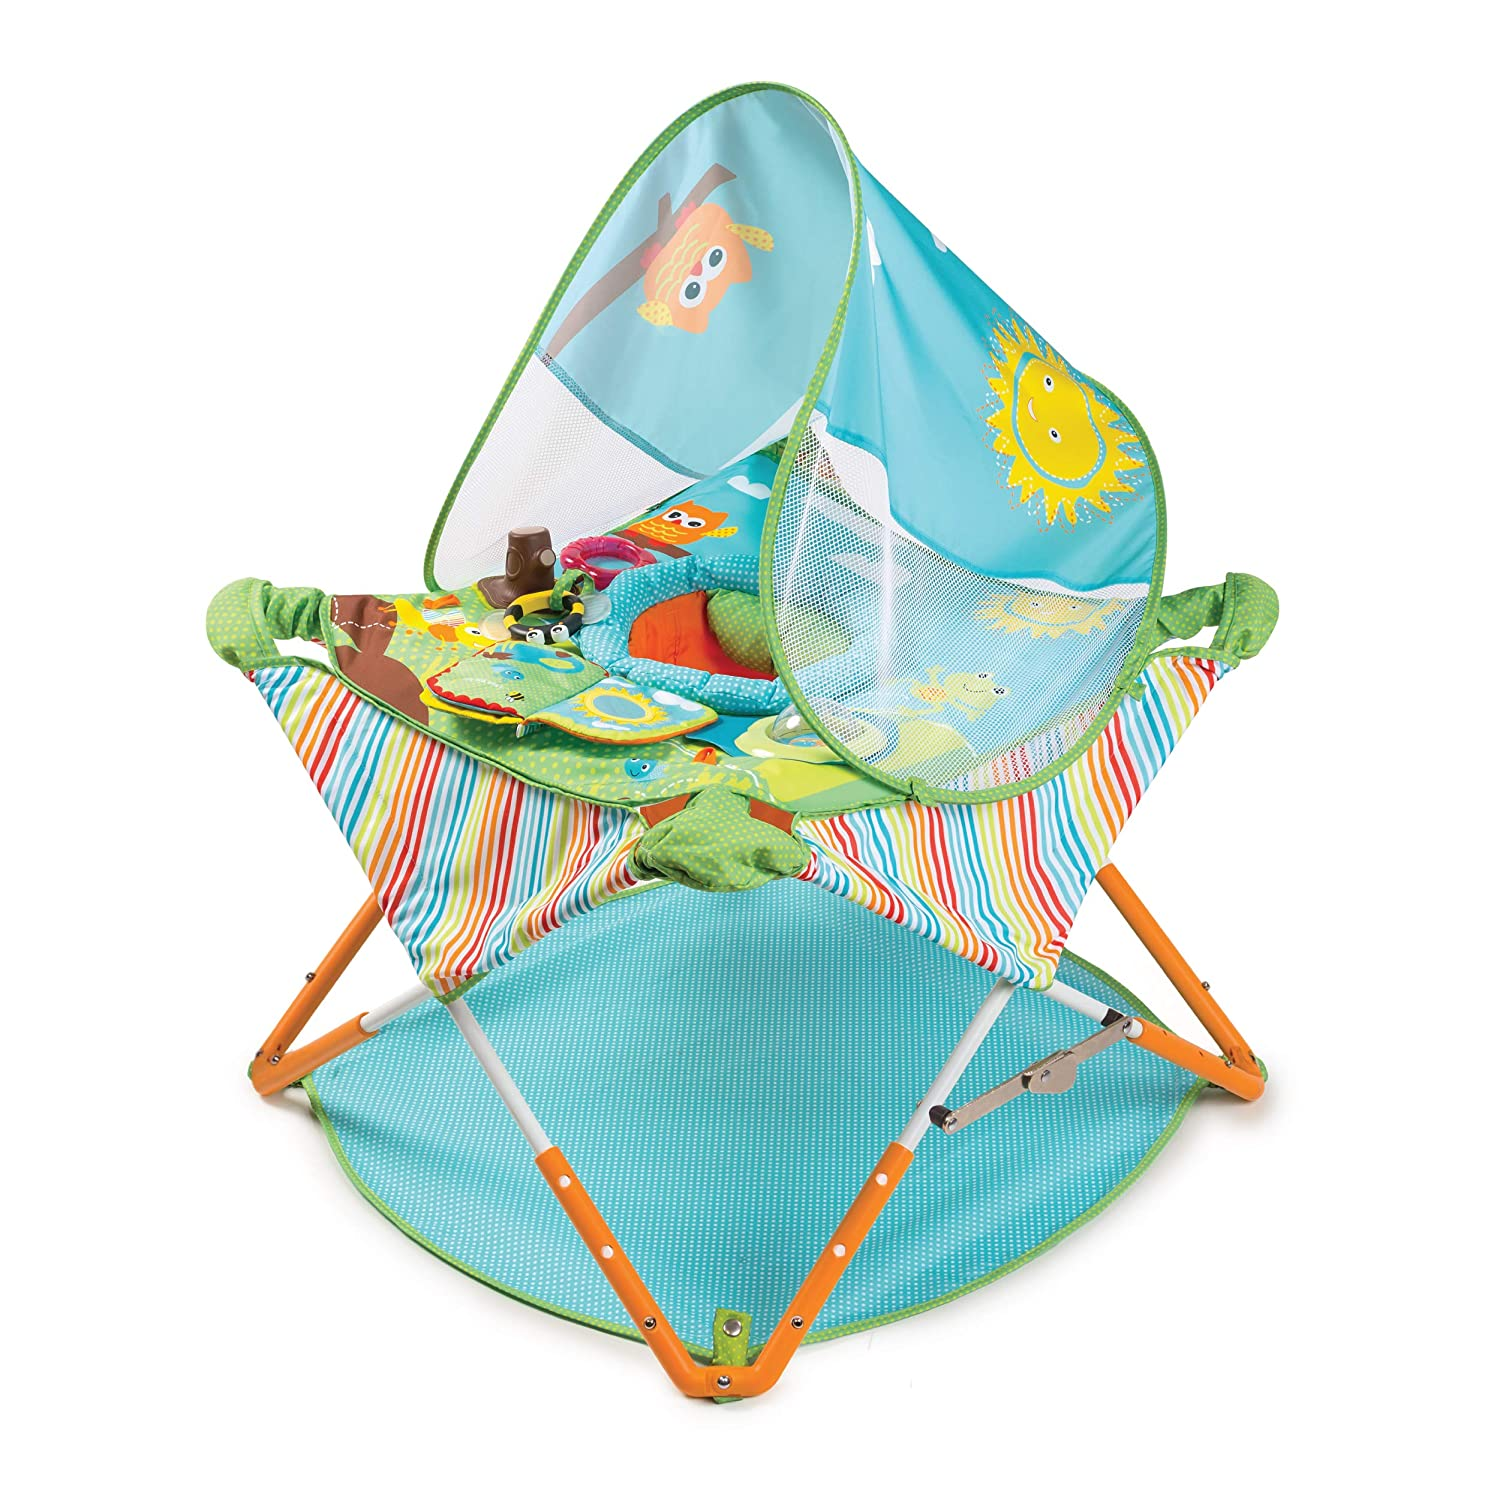 Summer Infant Pop 'N Jump Portable Lightweight Activity Baby Jumper